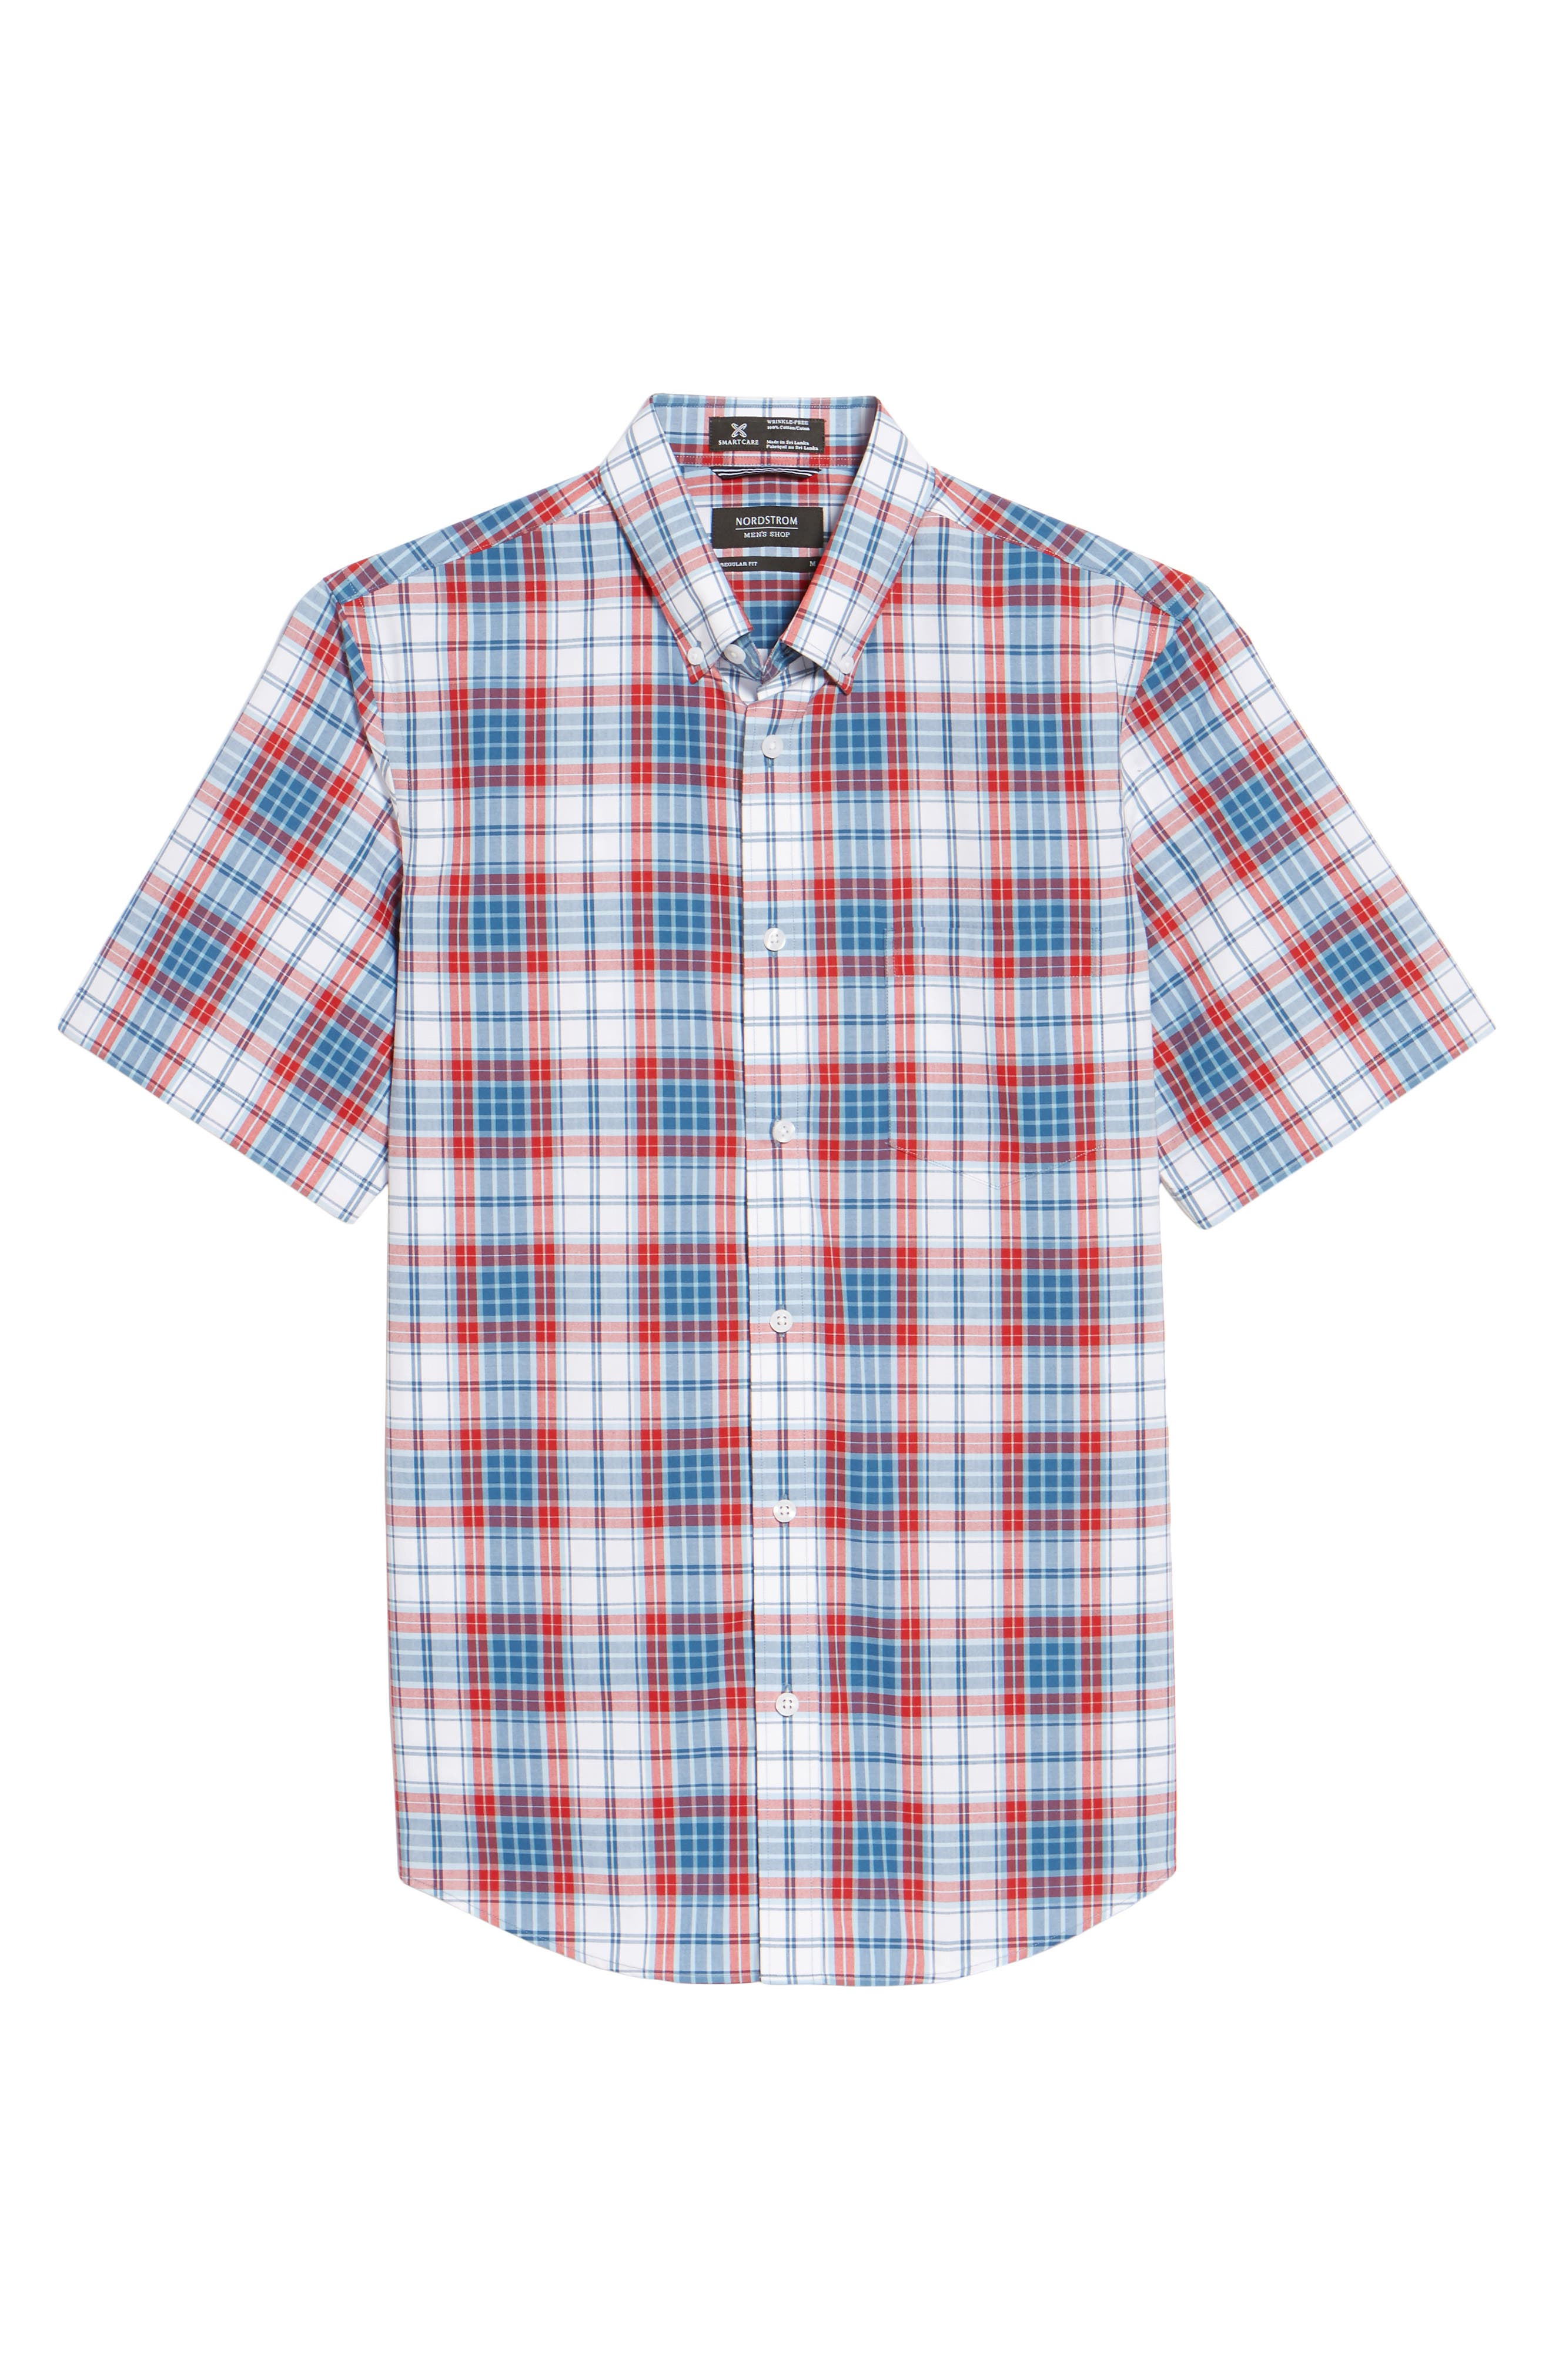 Plaid Sport Shirt,                             Alternate thumbnail 6, color,                             100